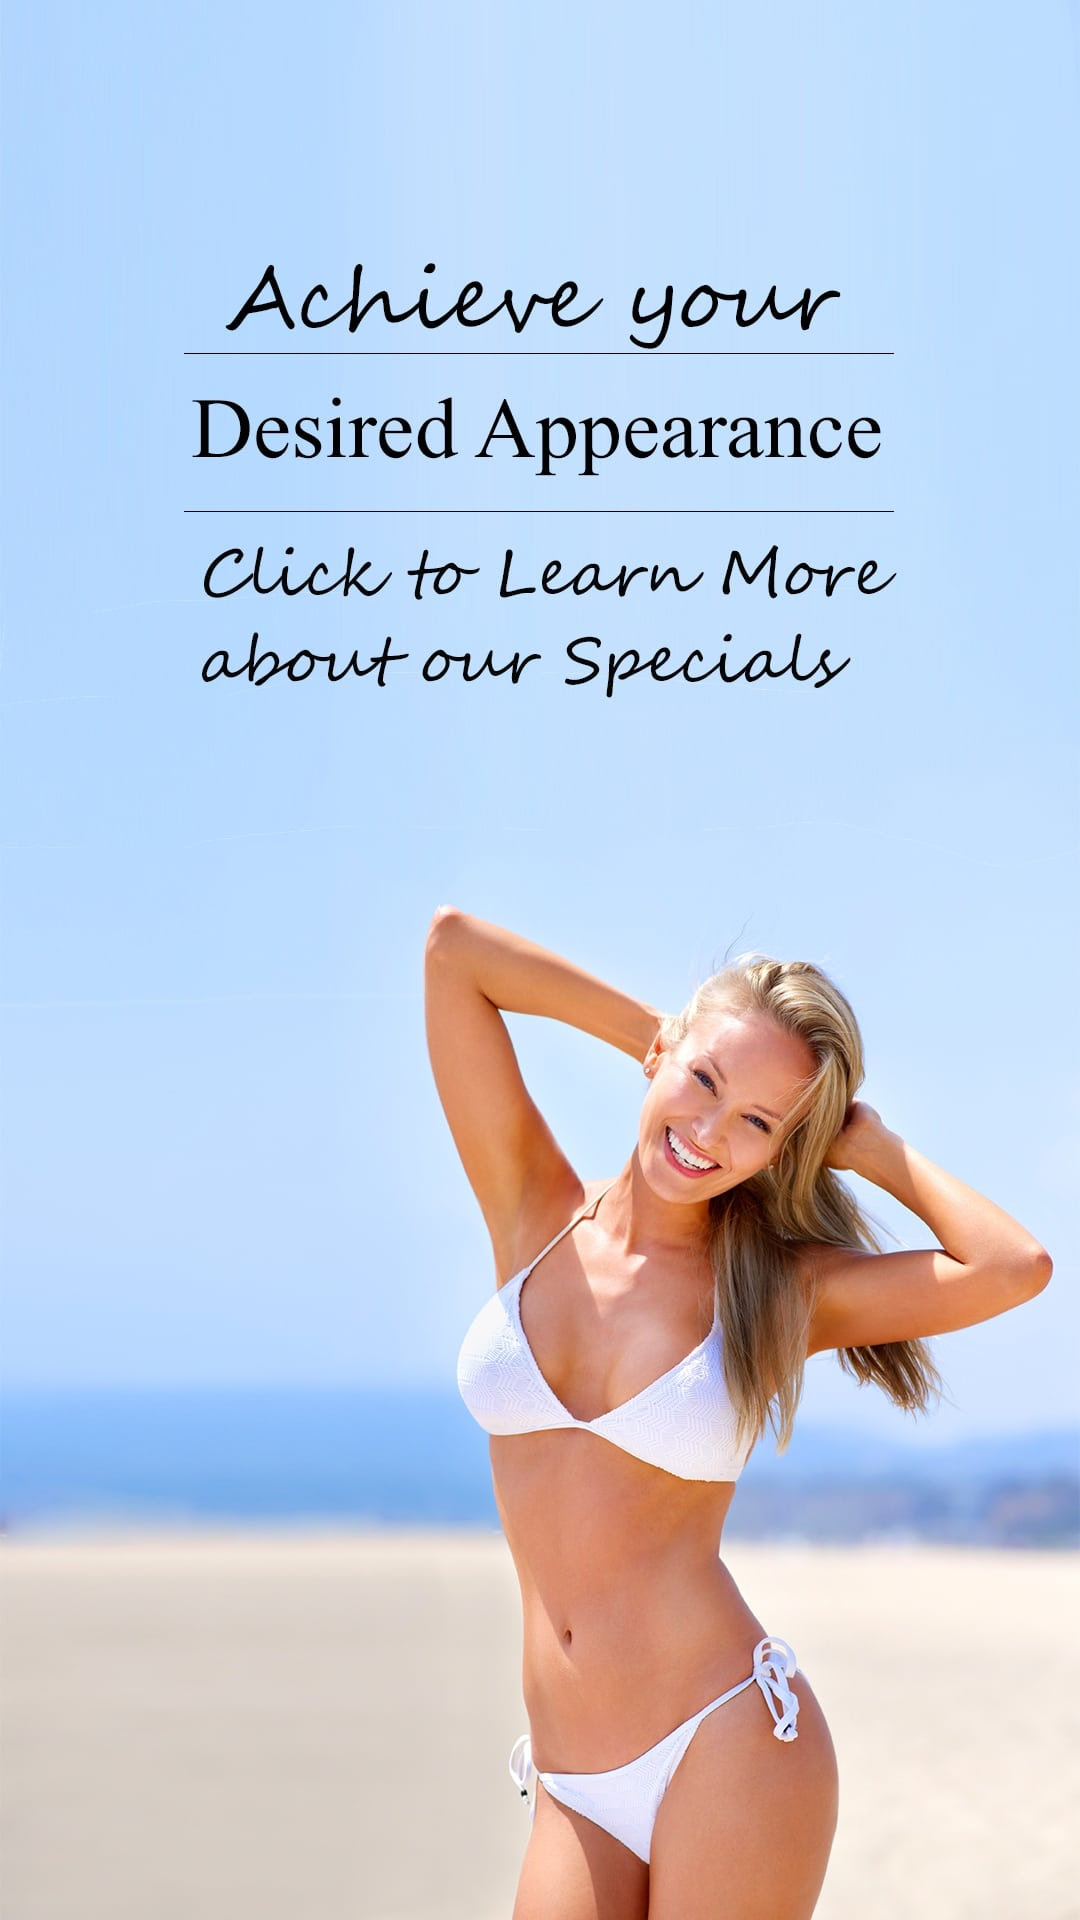 Please call board-certified Houston plastic surgeon Dr. Michael Eisemann at 713-766-0071 to learn about our summertime plastic surgery specials including $500 off silicone breast implants